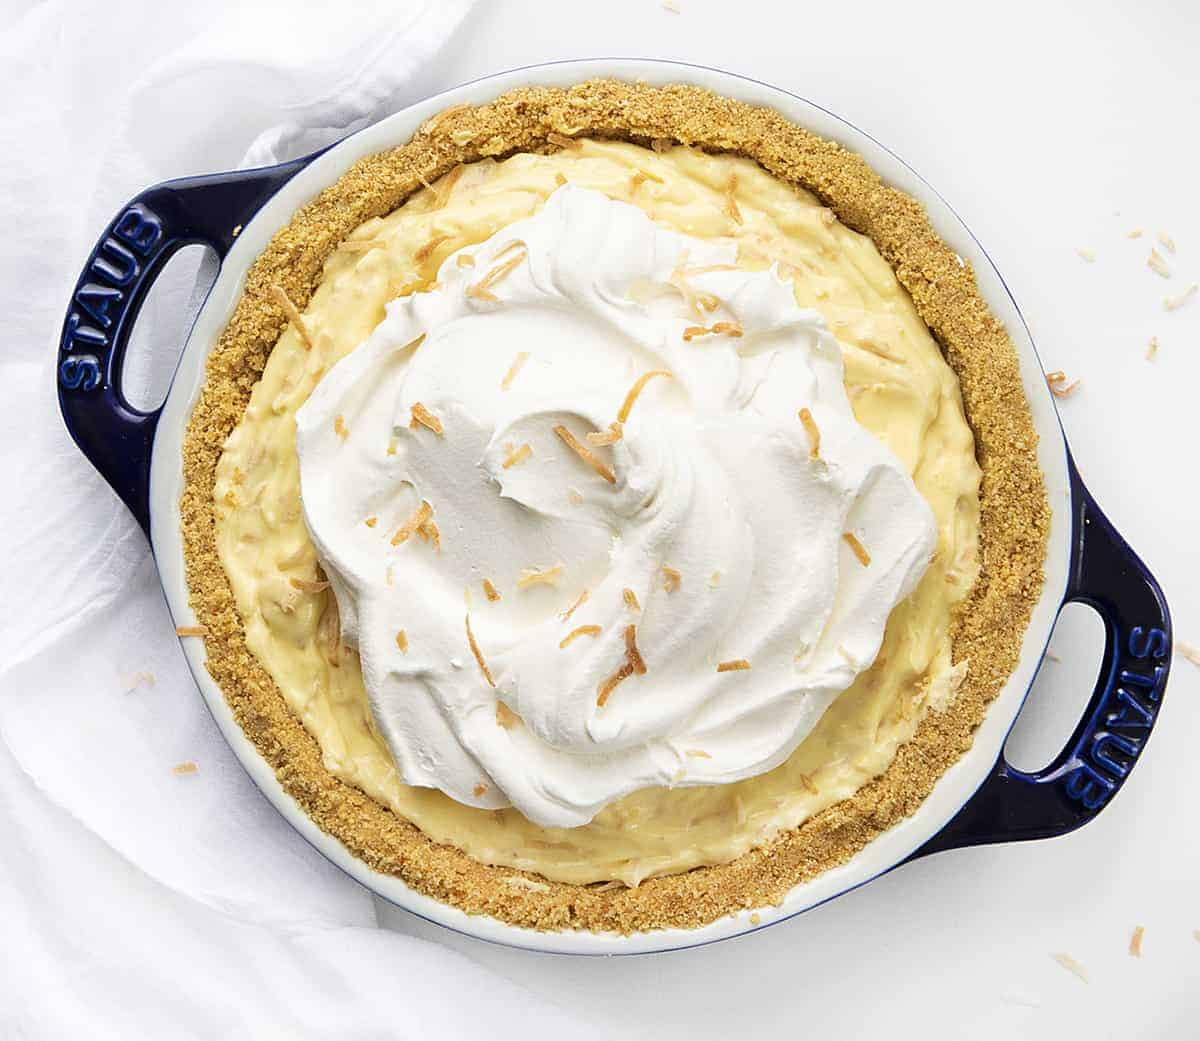 Overhead View of Coconut Cream Pie in Blue Pie Pan on White Counter